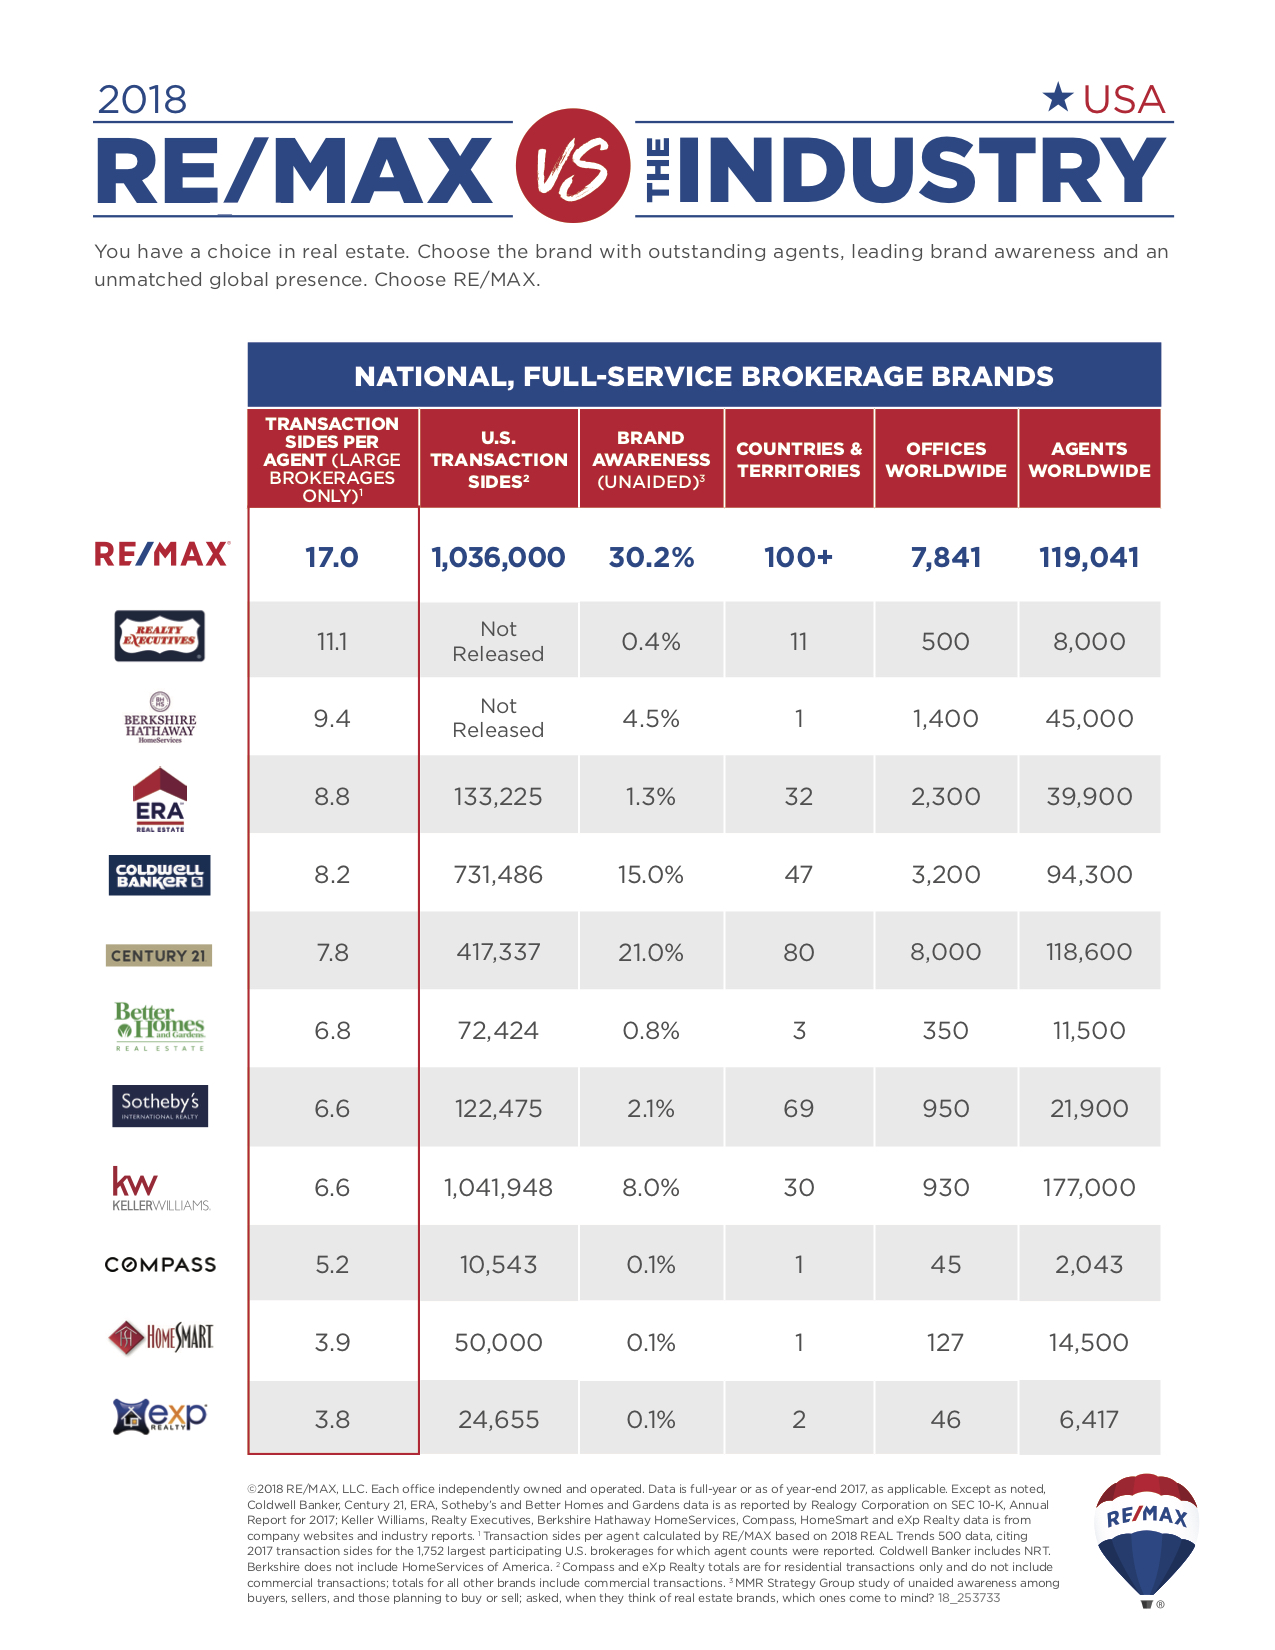 ReMax vs. Industry